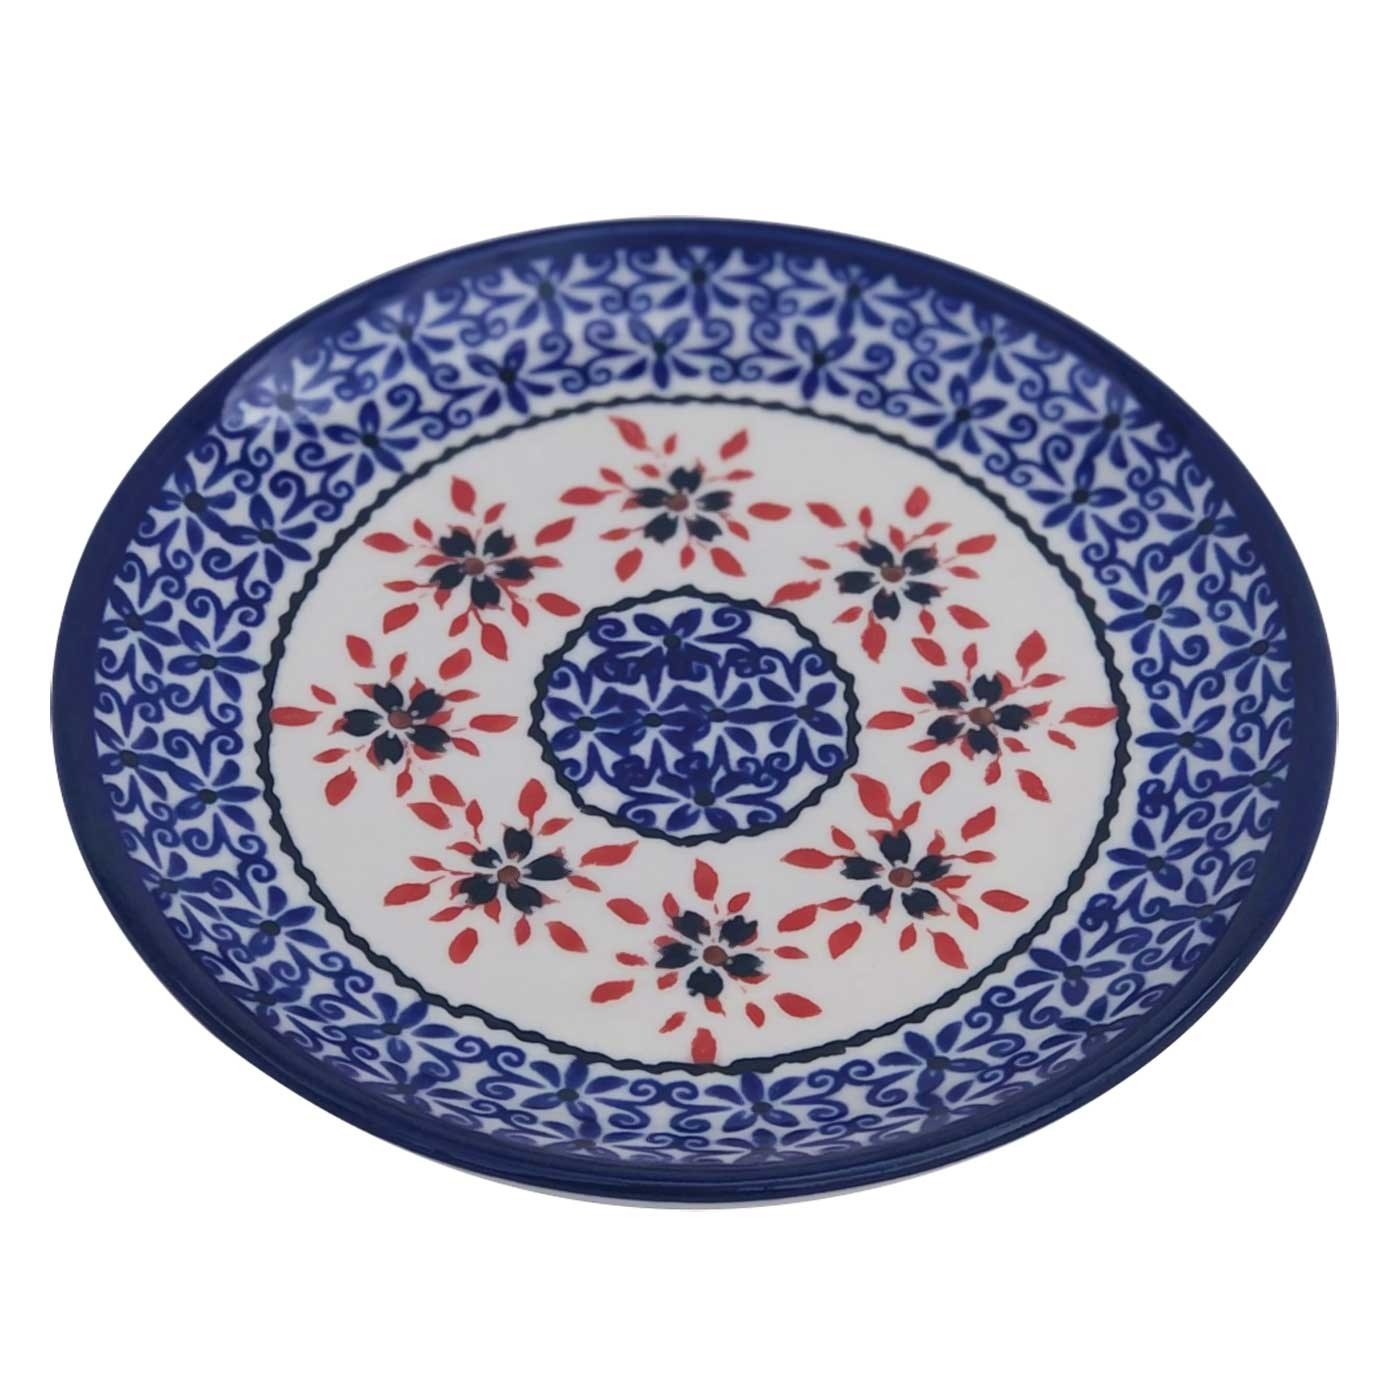 Pottery Avenue 6.5-inch Bread & Butter - Dessert Stoneware Plate - 818-Limited Edition-A